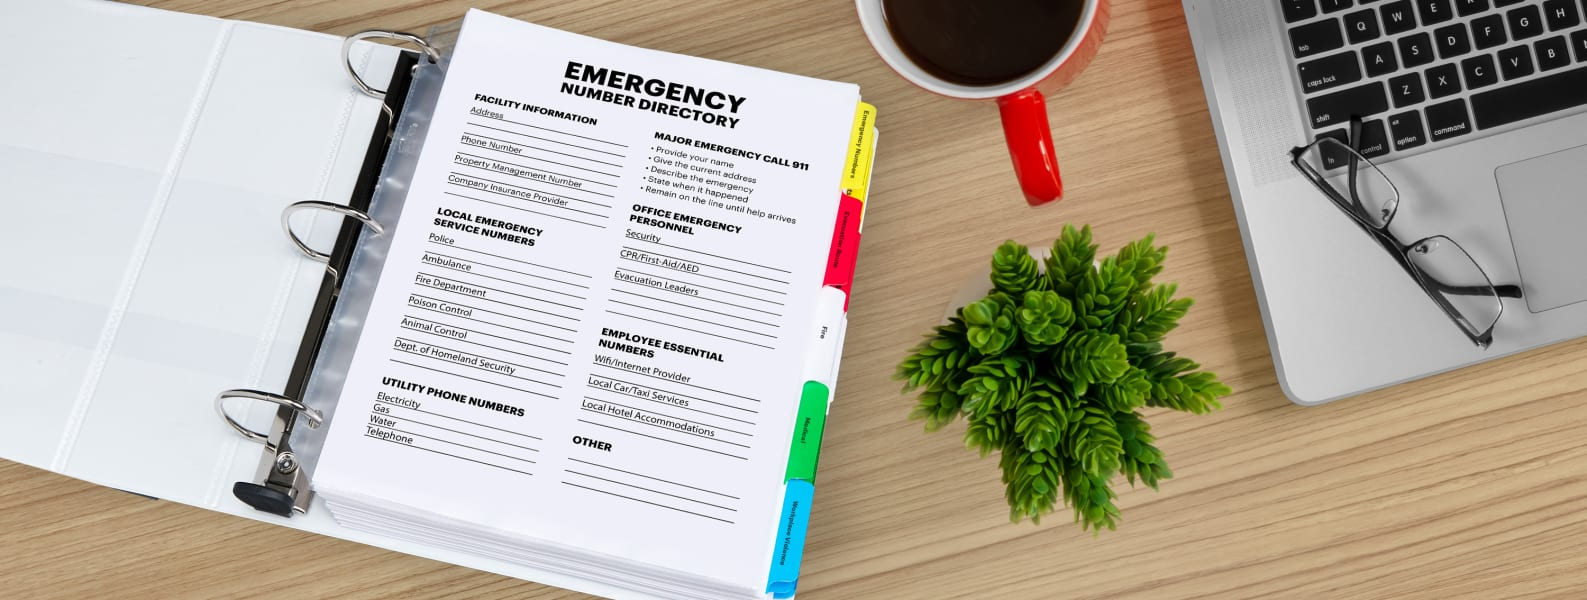 free emergency binder printable for phone numbers using avery templates displayed in a binder on a modern clean wooden desk with